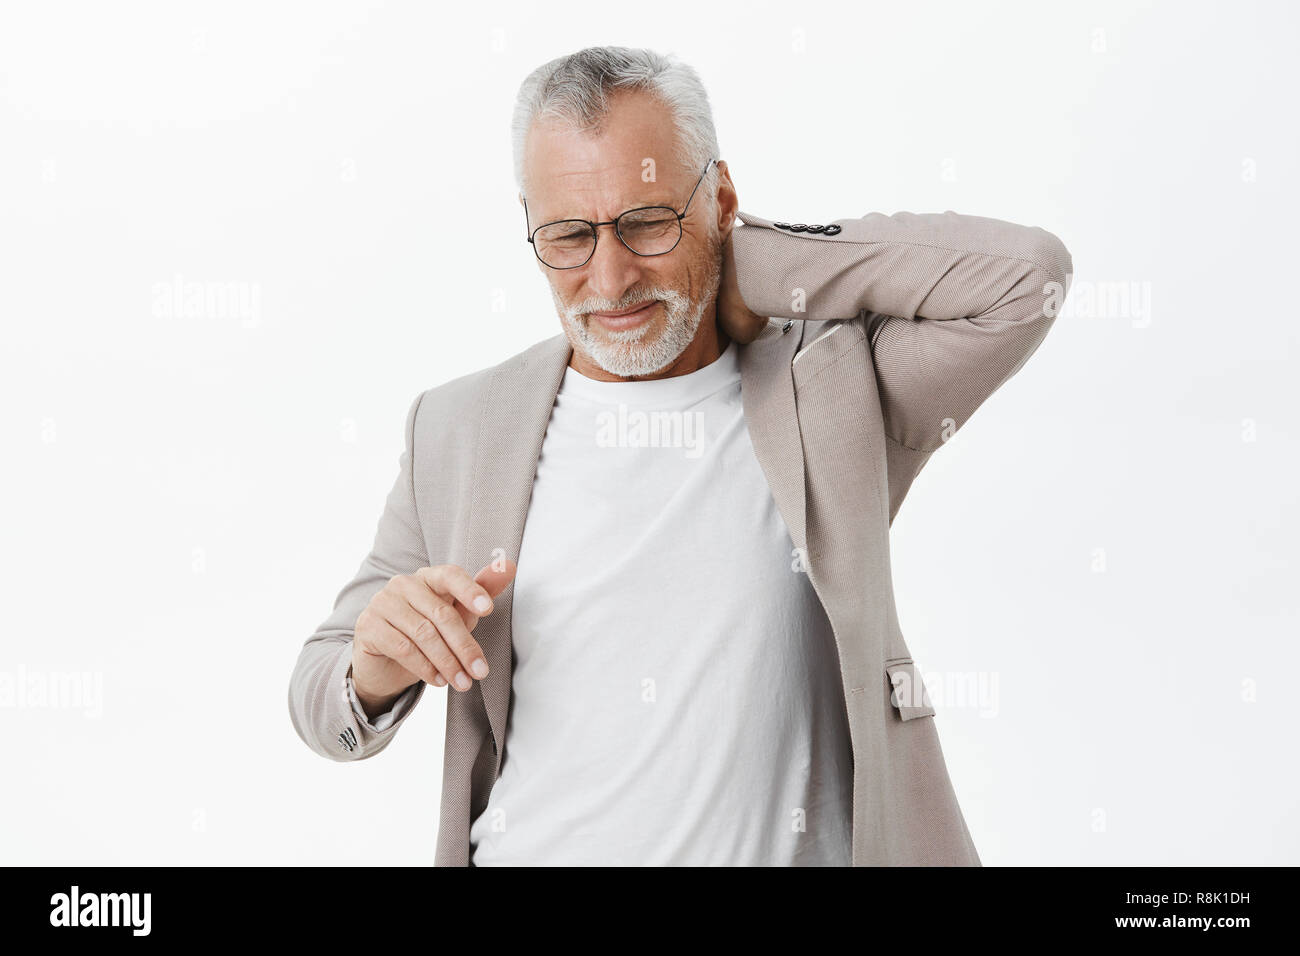 Man feeling pain in spine after hardworking sitting for long time. Portrait of displeased bothered mature male with white beard and hair in glasses touching back of neck complaining on pain - Stock Image